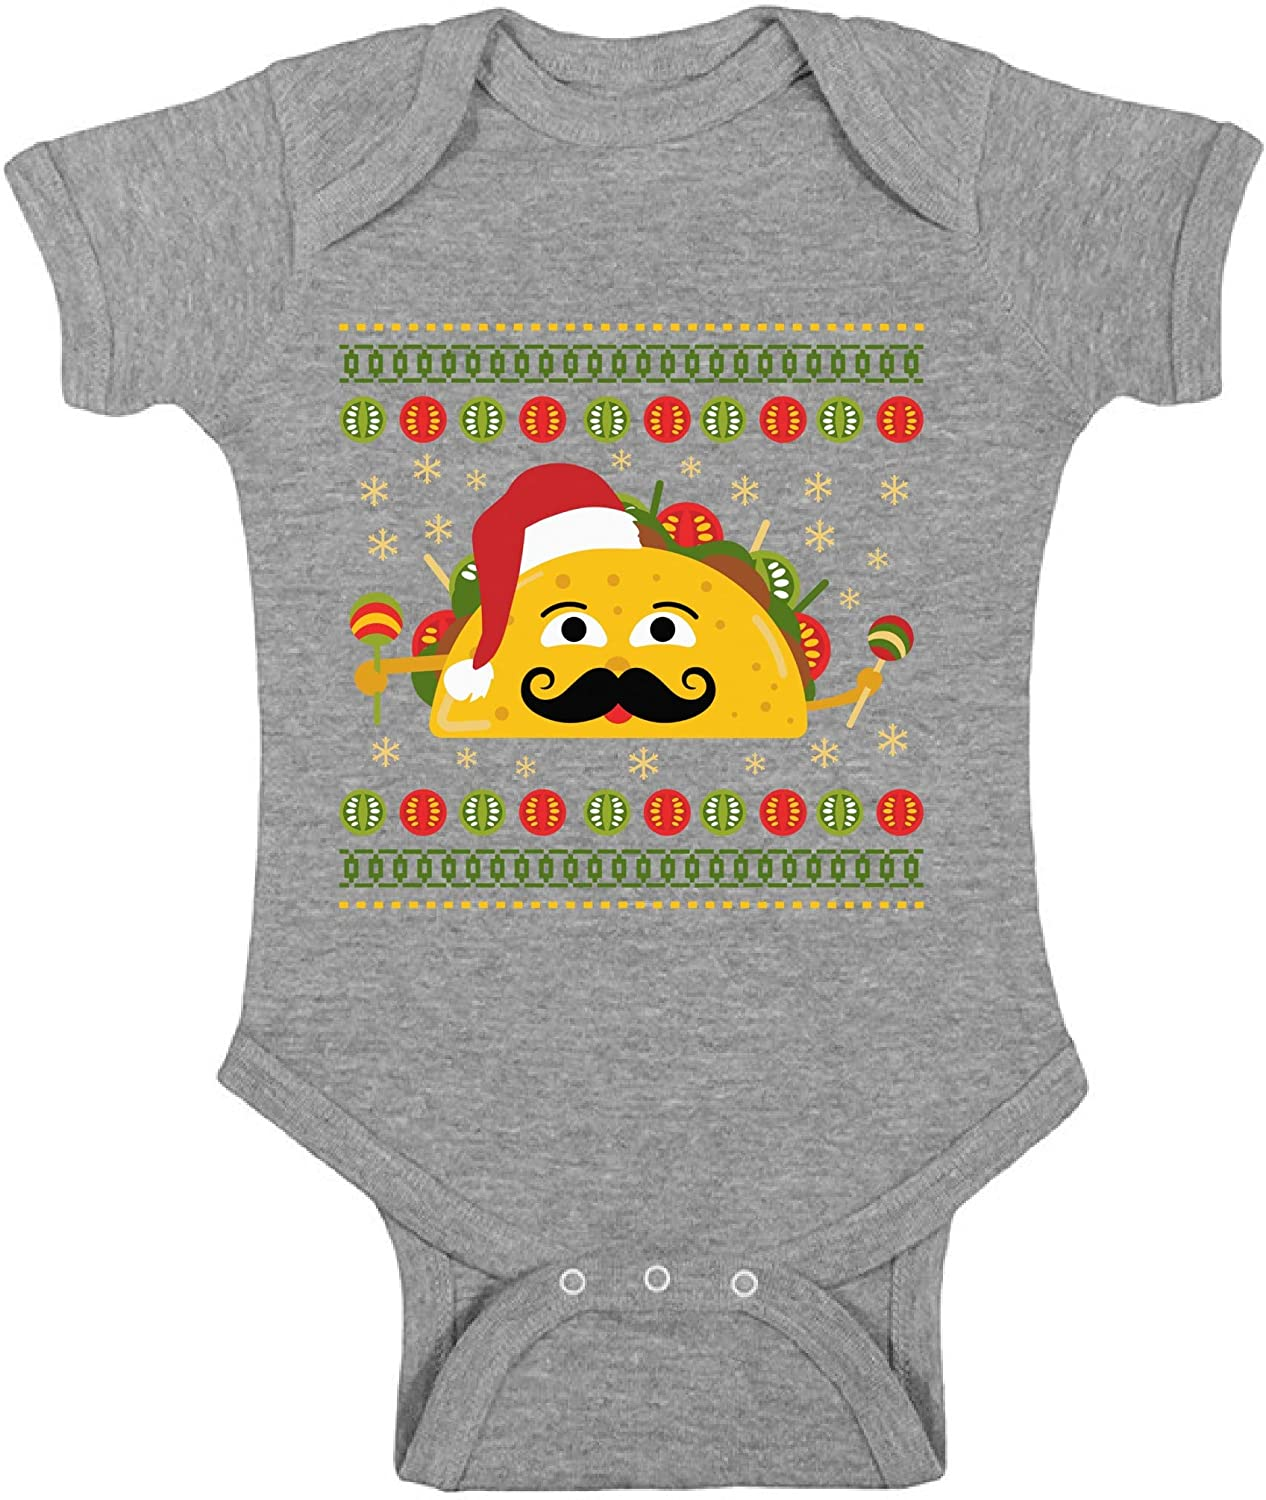 Awkward Styles Ugly Christmas Baby Outfit Bodysuit Xmas Taco Romper